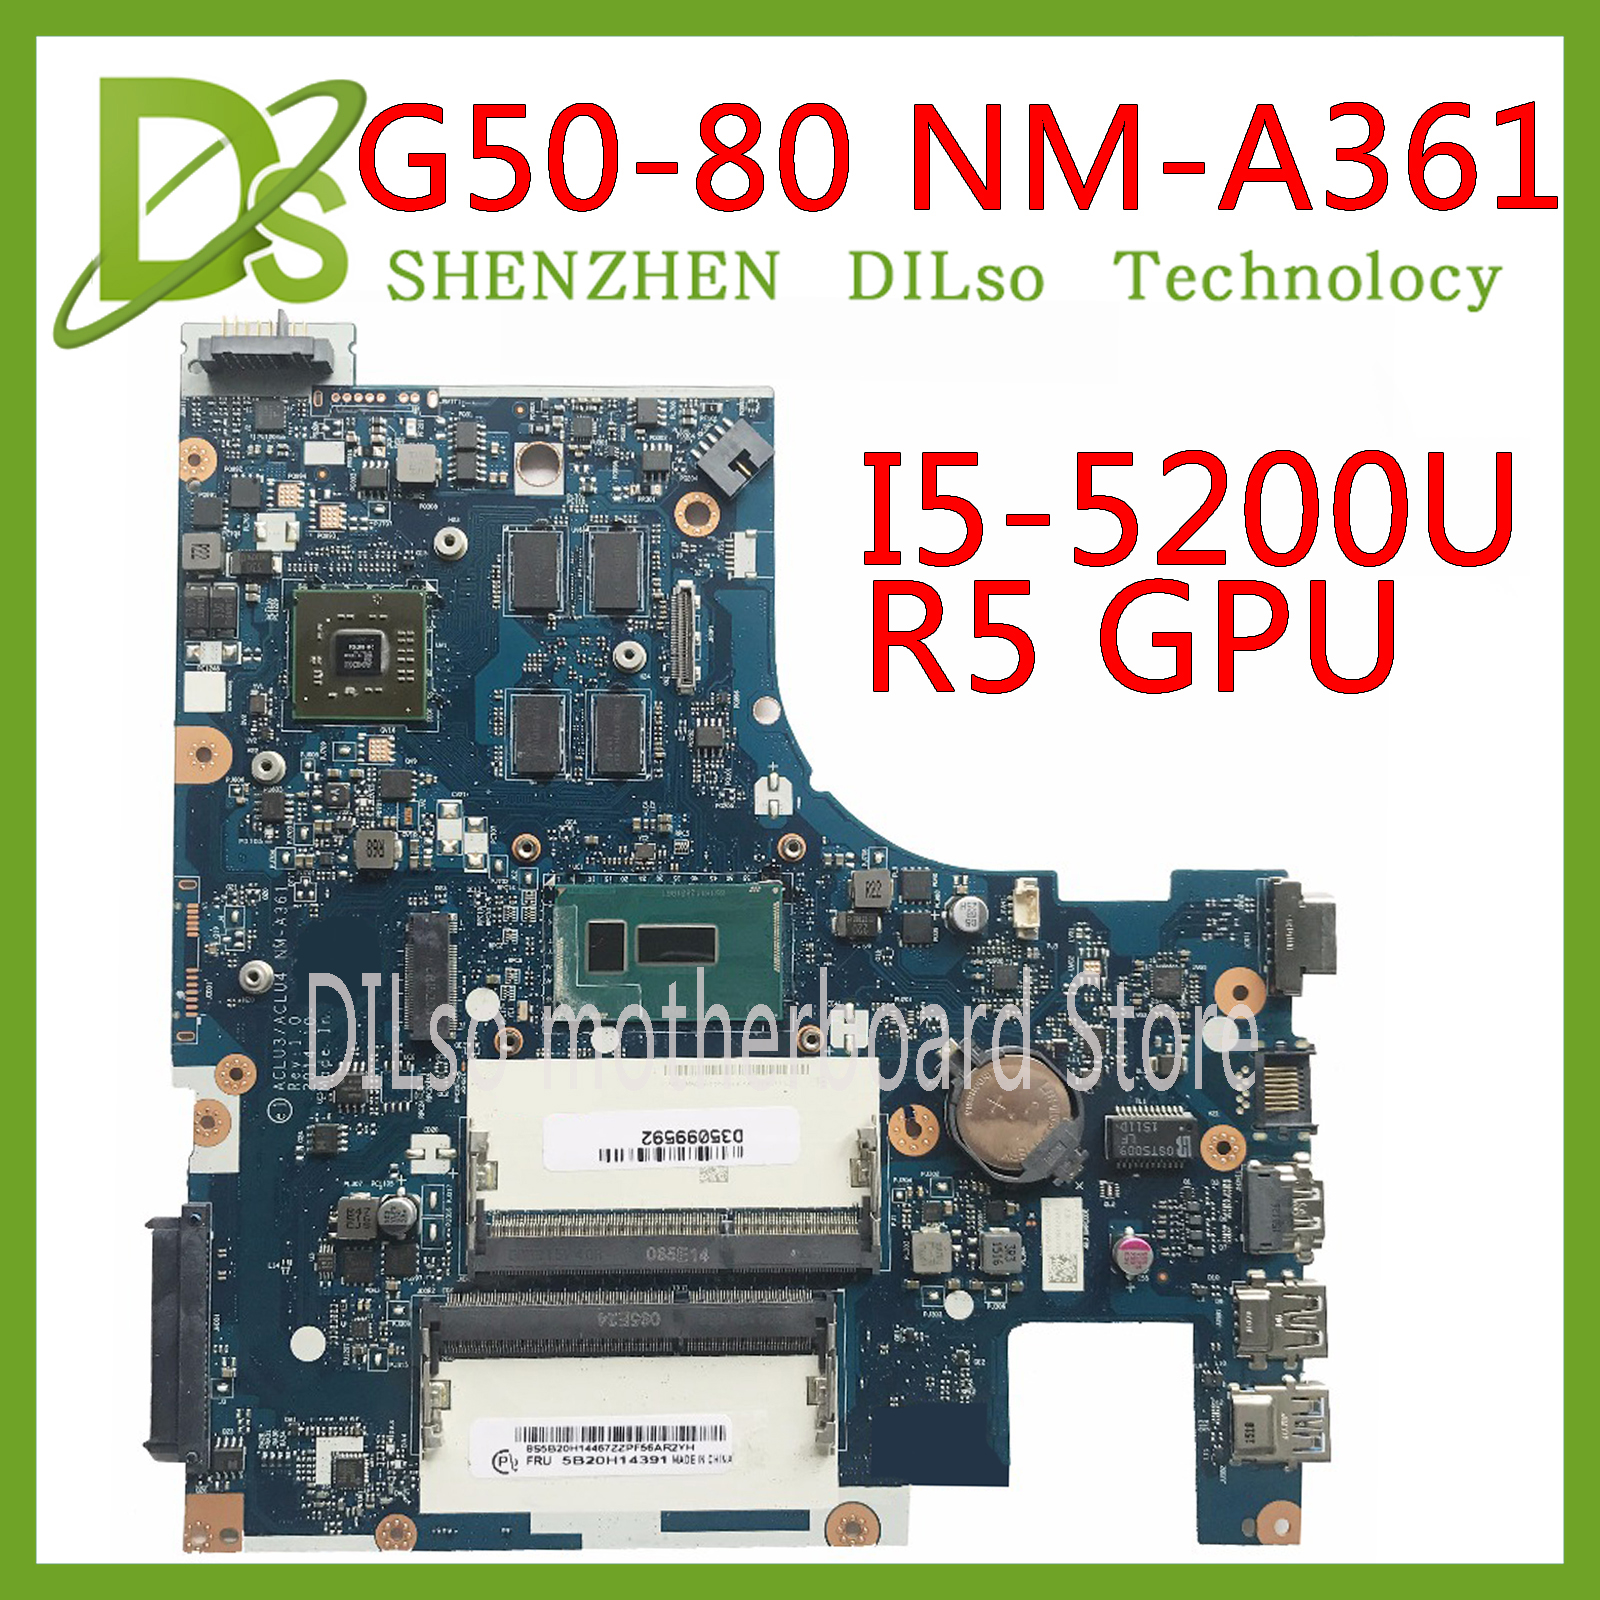 KEFU <font><b>NM</b></font>-<font><b>A361</b></font> motherboard for Lenovo G50-80 laptop motherboard G50-80 ACLU3/ACLU4 <font><b>NM</b></font>-<font><b>A361</b></font> I5-5200U R5 GPU original 100% Tested image